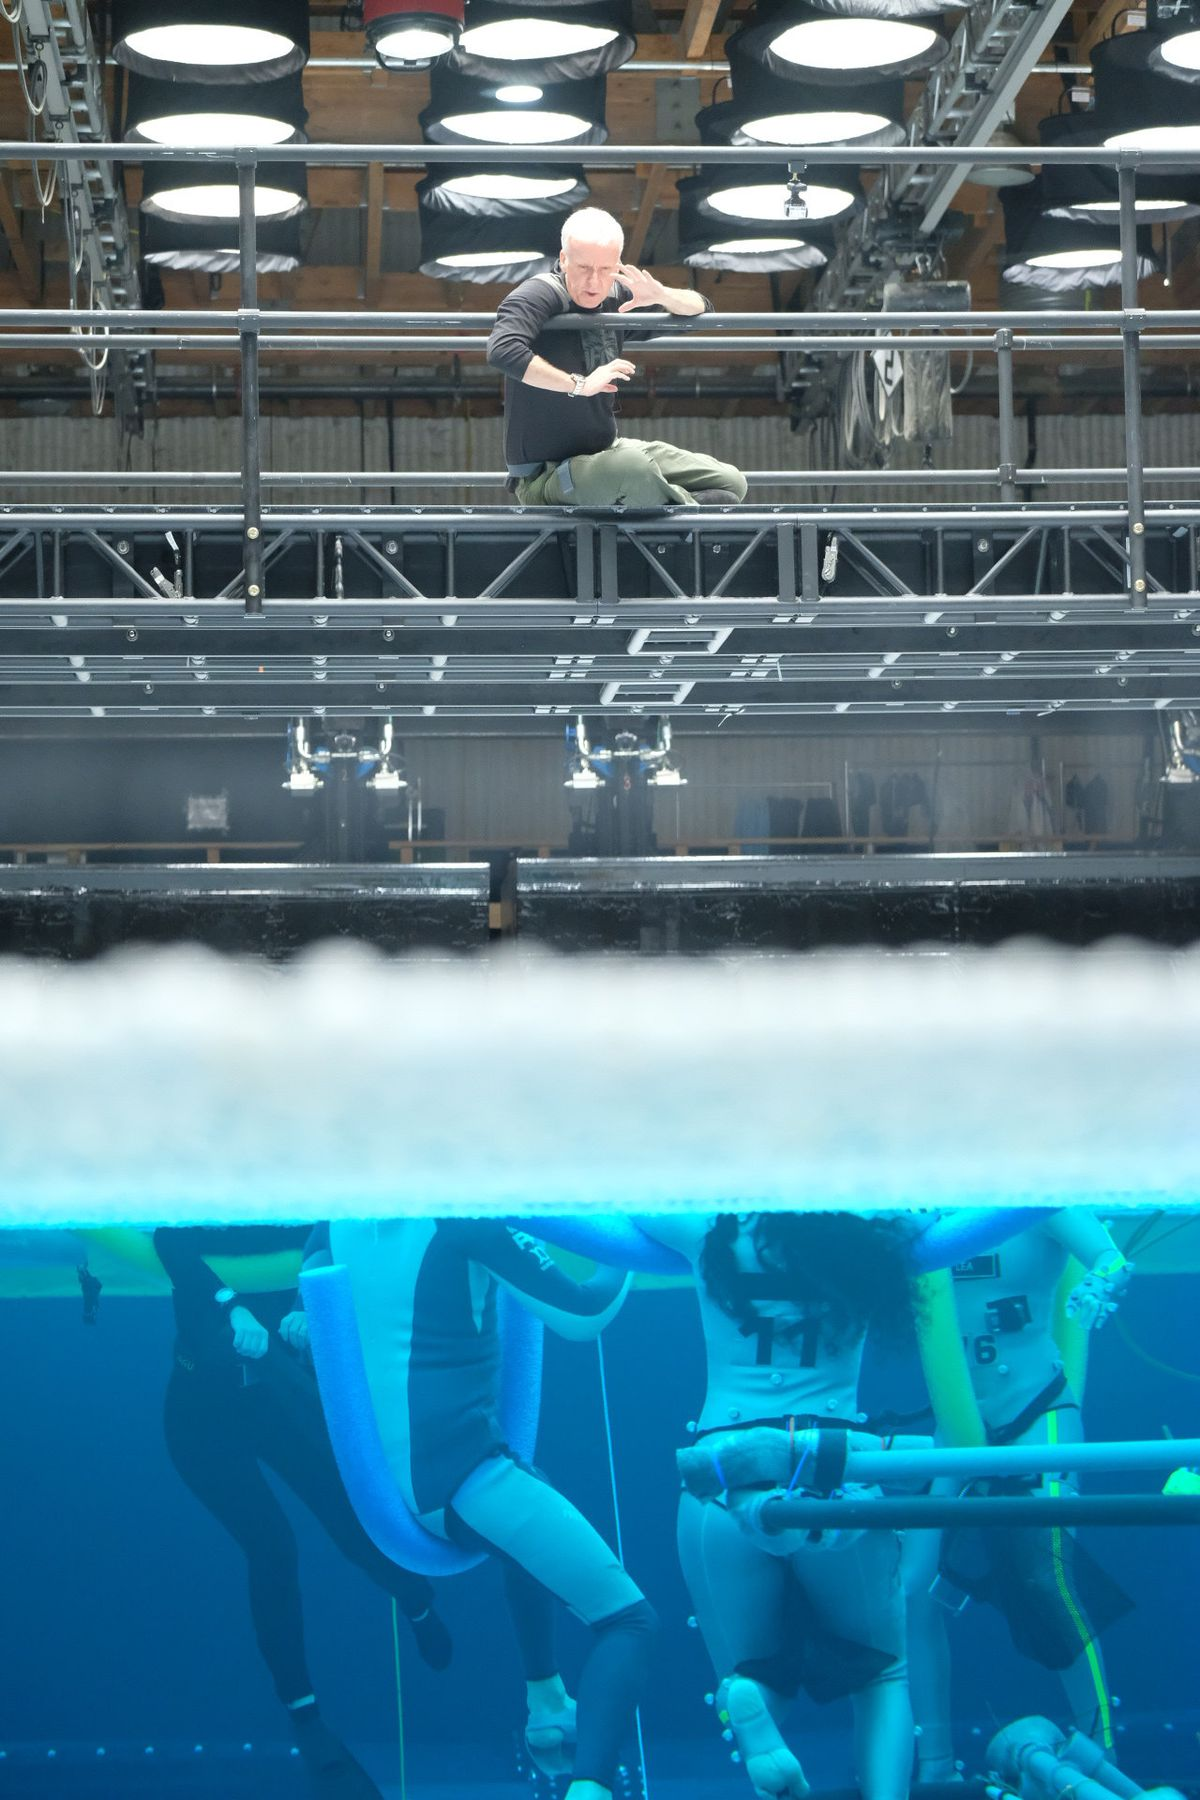 james cameron directs swimming actors wearing noodles in a giant water tank for avatar 2